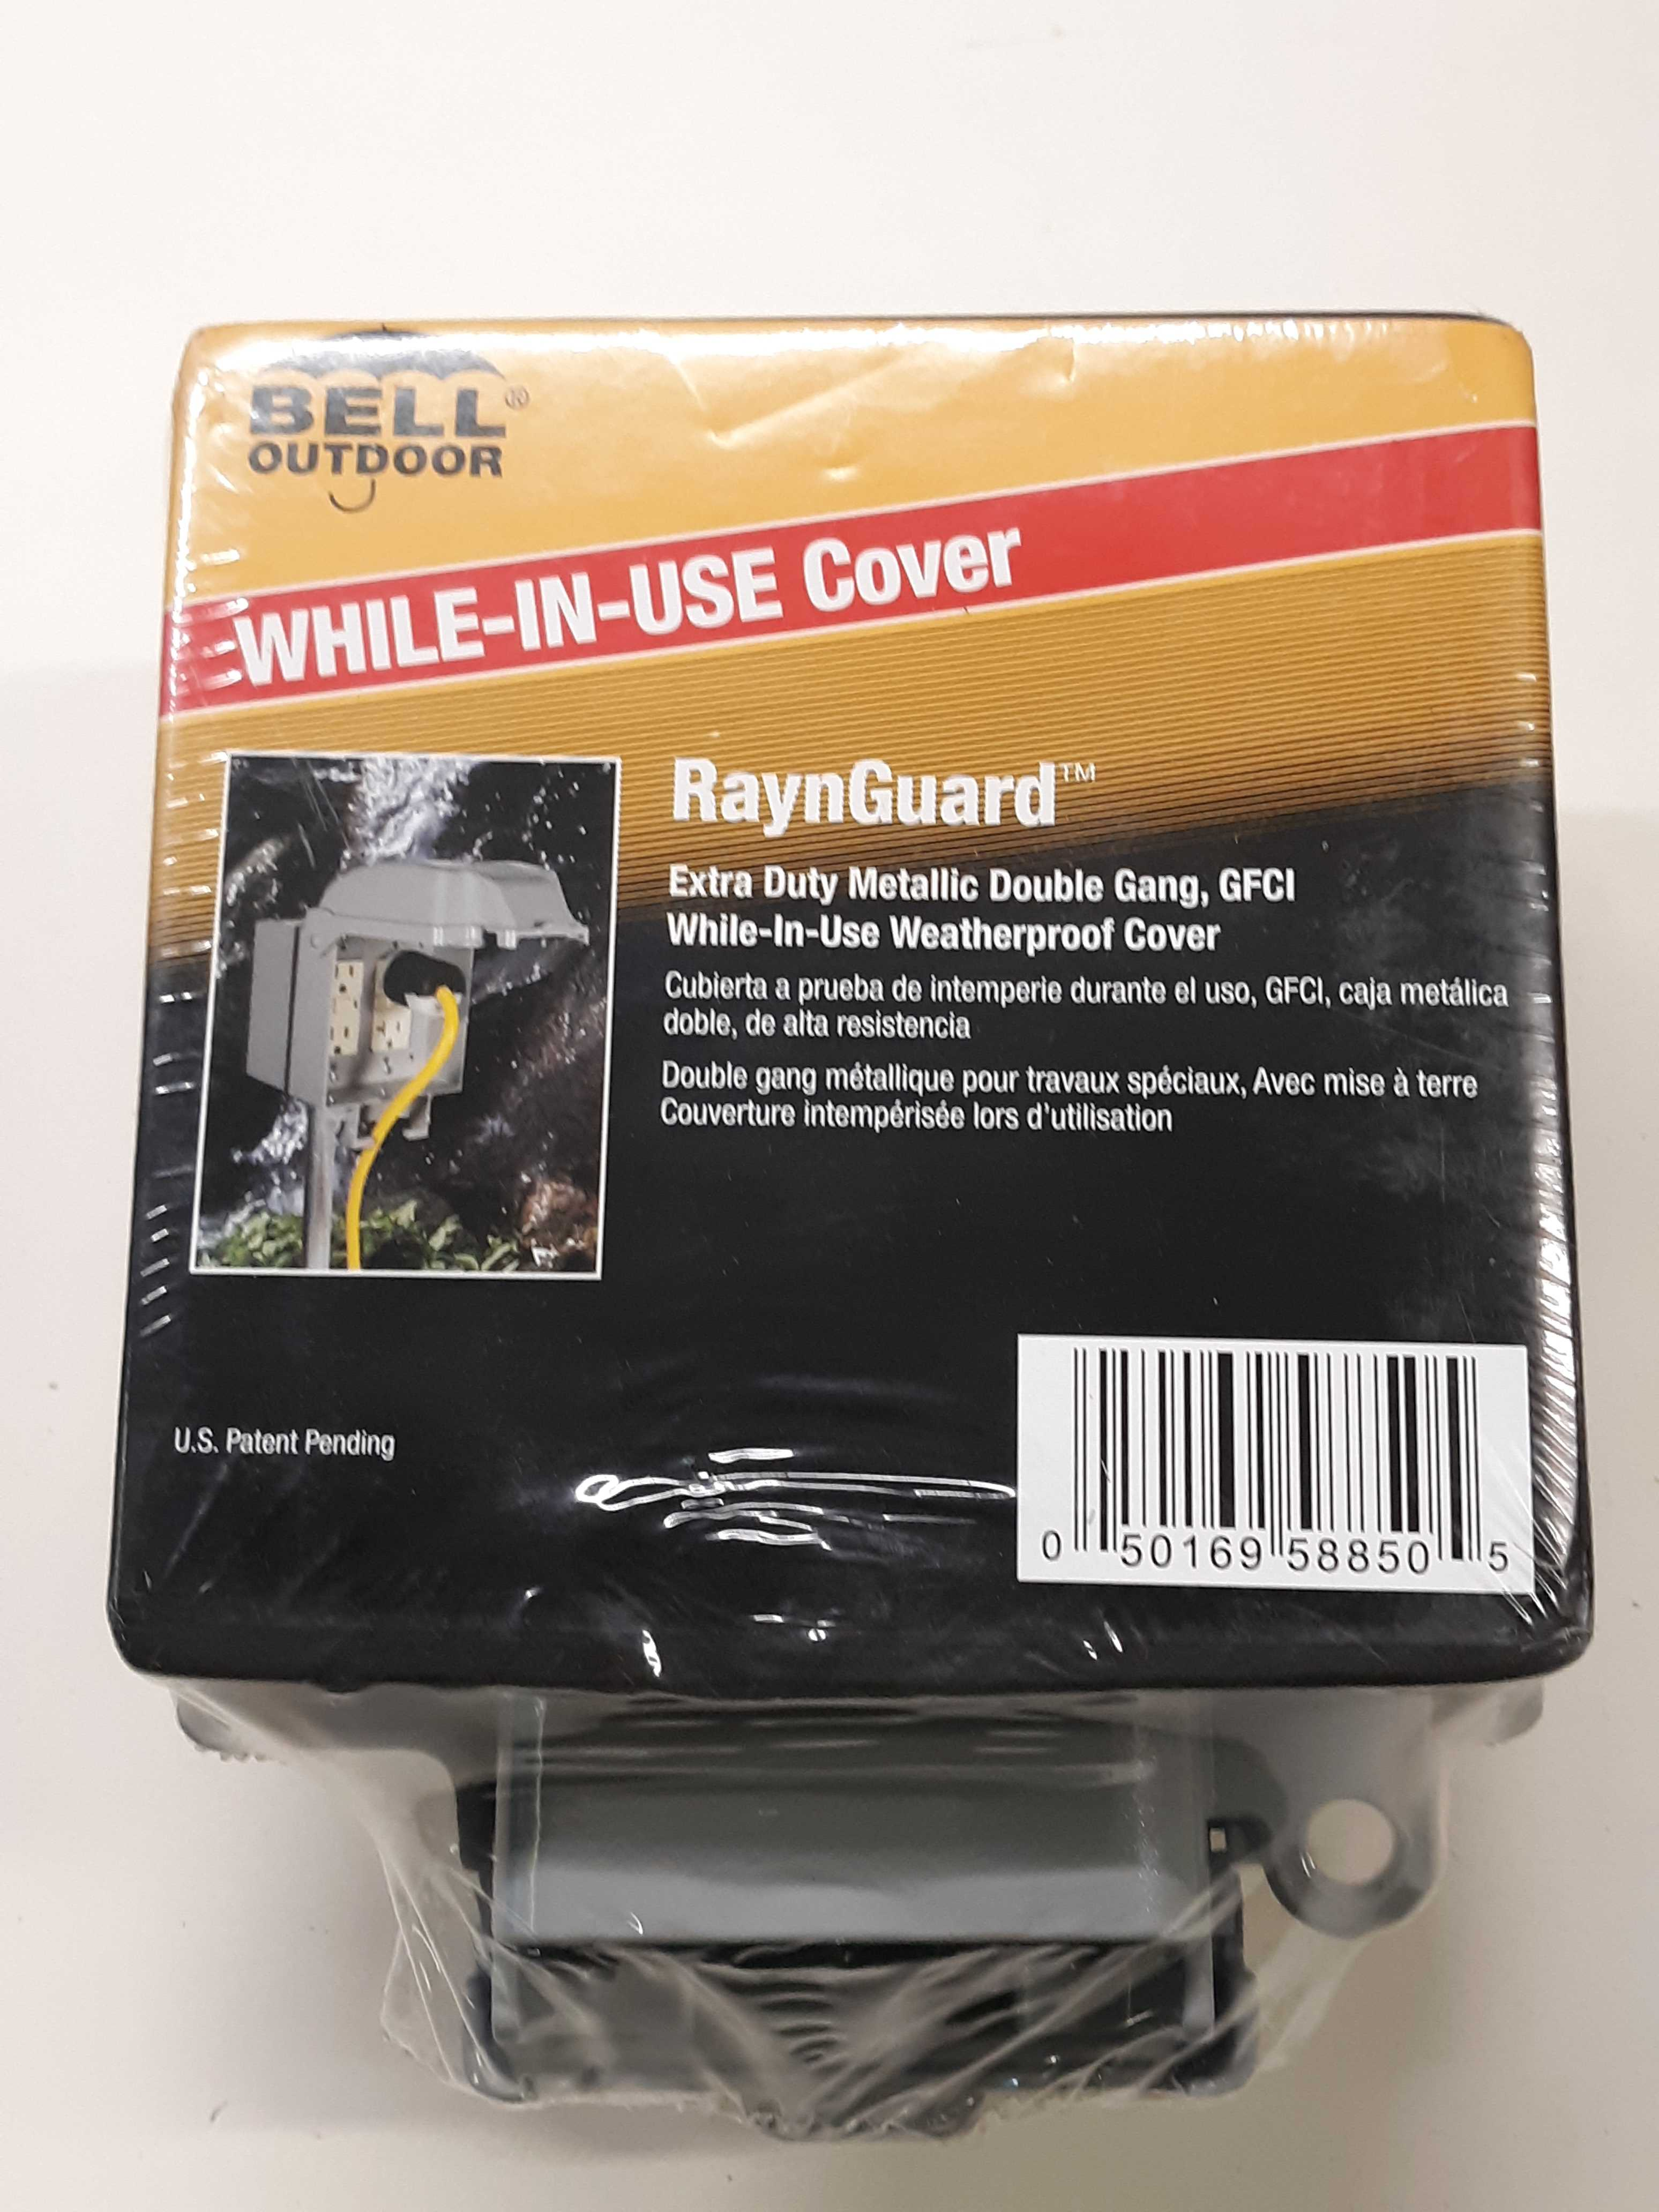 Hubbell-Bell Raynguard Cover 5885-0 Double Gang GFCI Heavy Duty Metallic